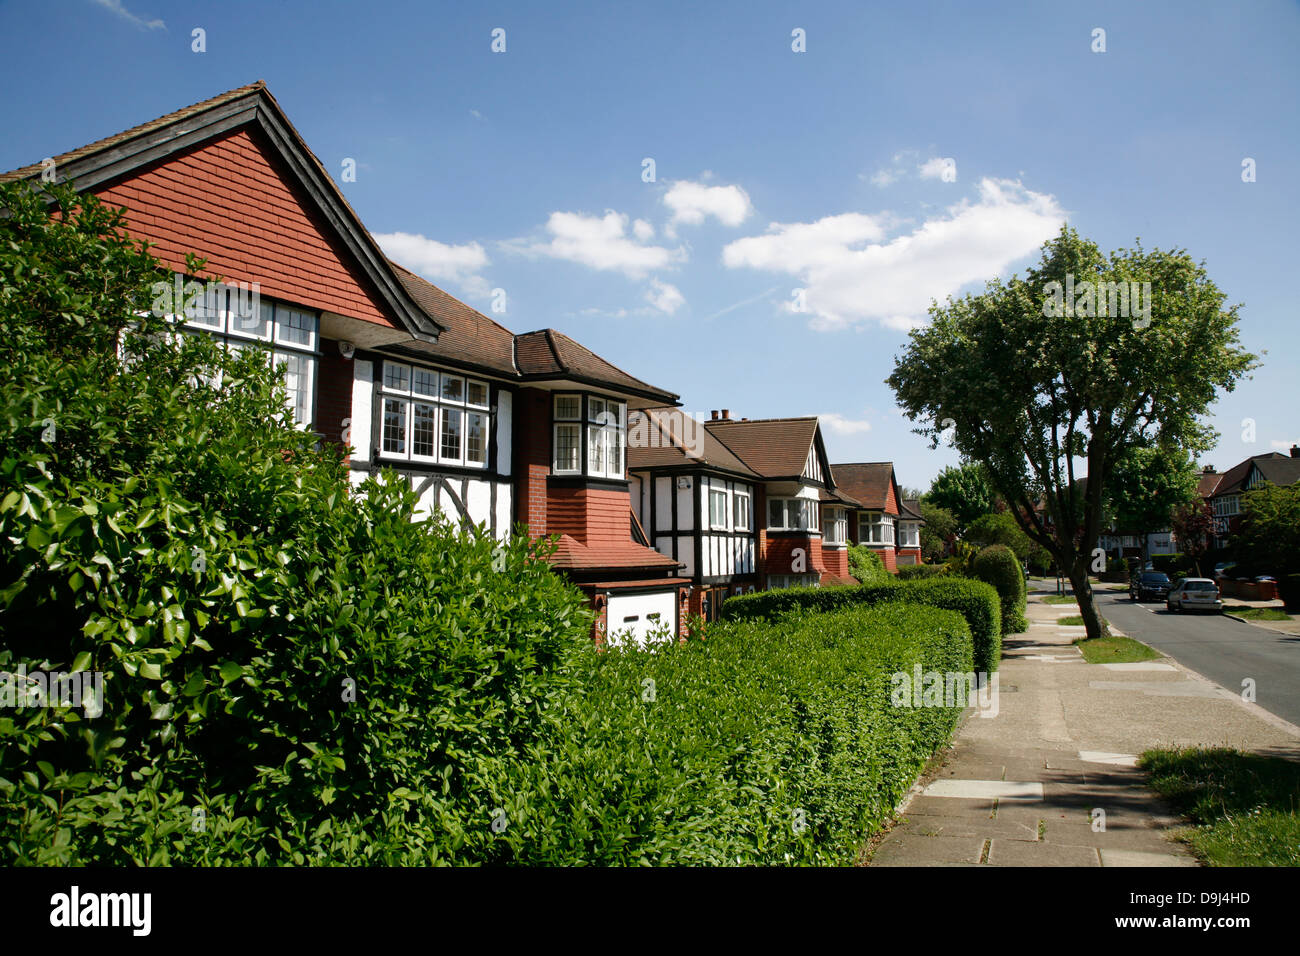 Suburban housing on Barn Hill, Wembley Park, London, UK - Stock Image